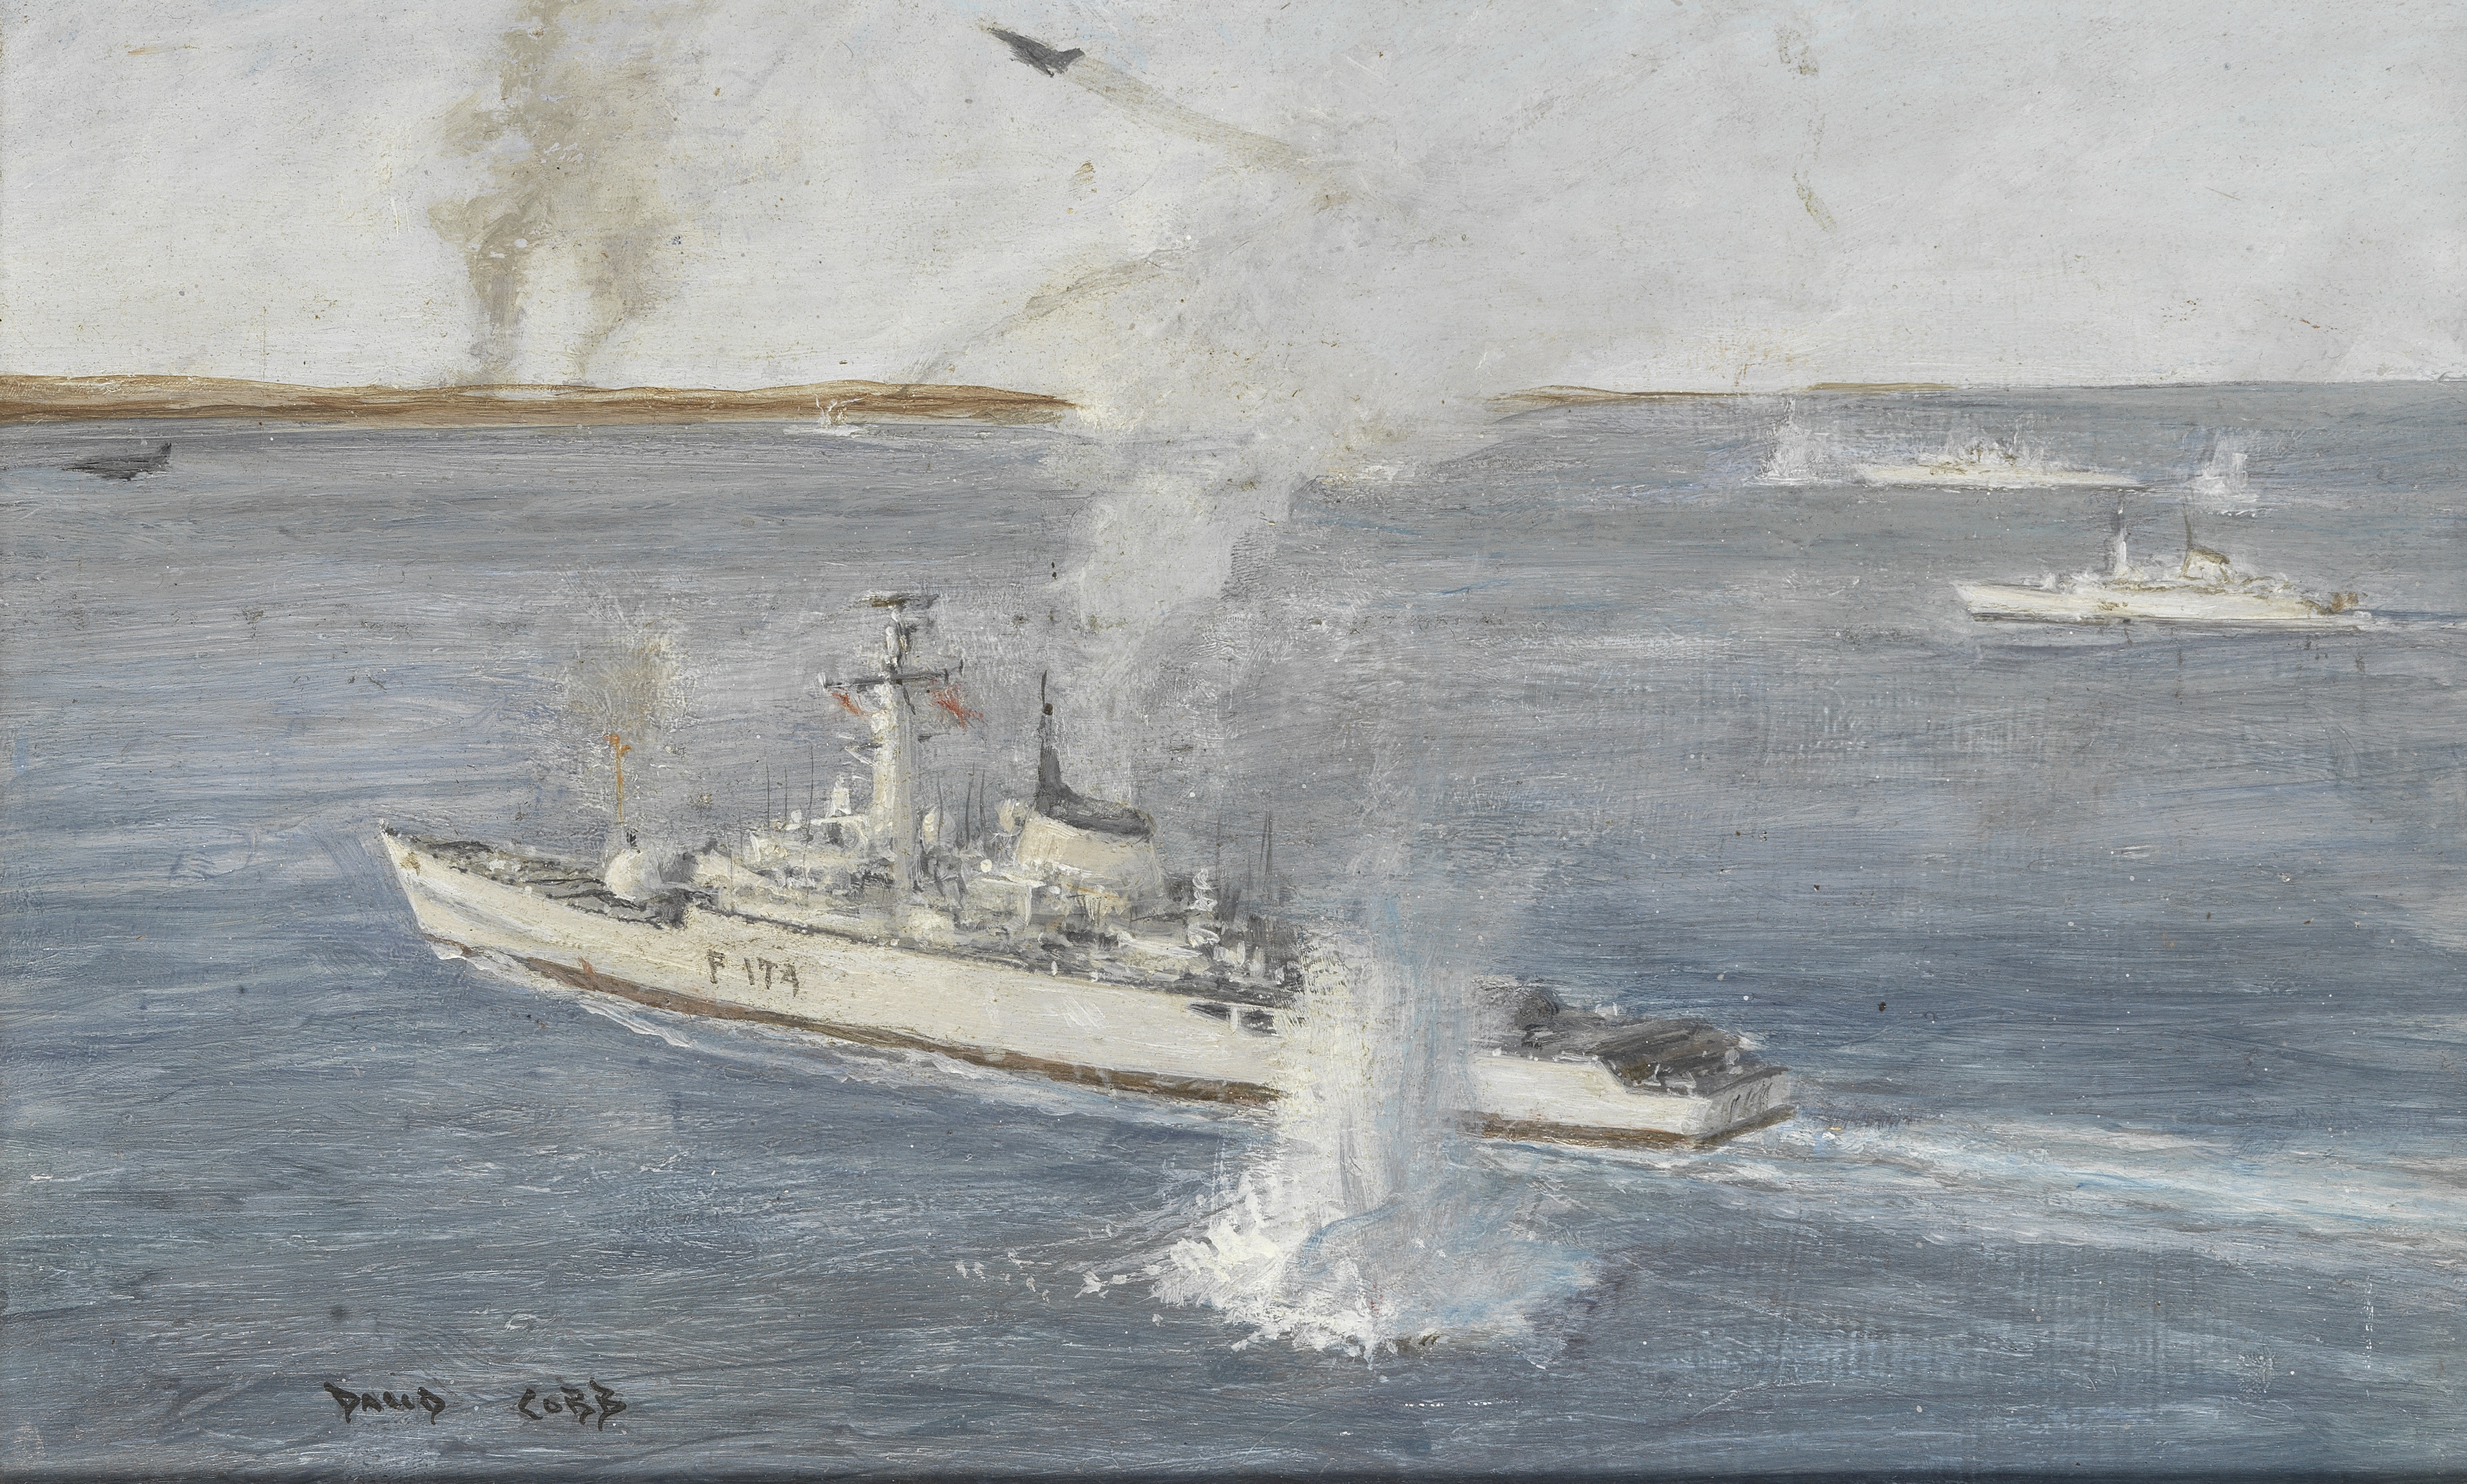 David Cobb (British, 1921-2014) The Falklands War: HMS Alacrity under fire and a view with smould...